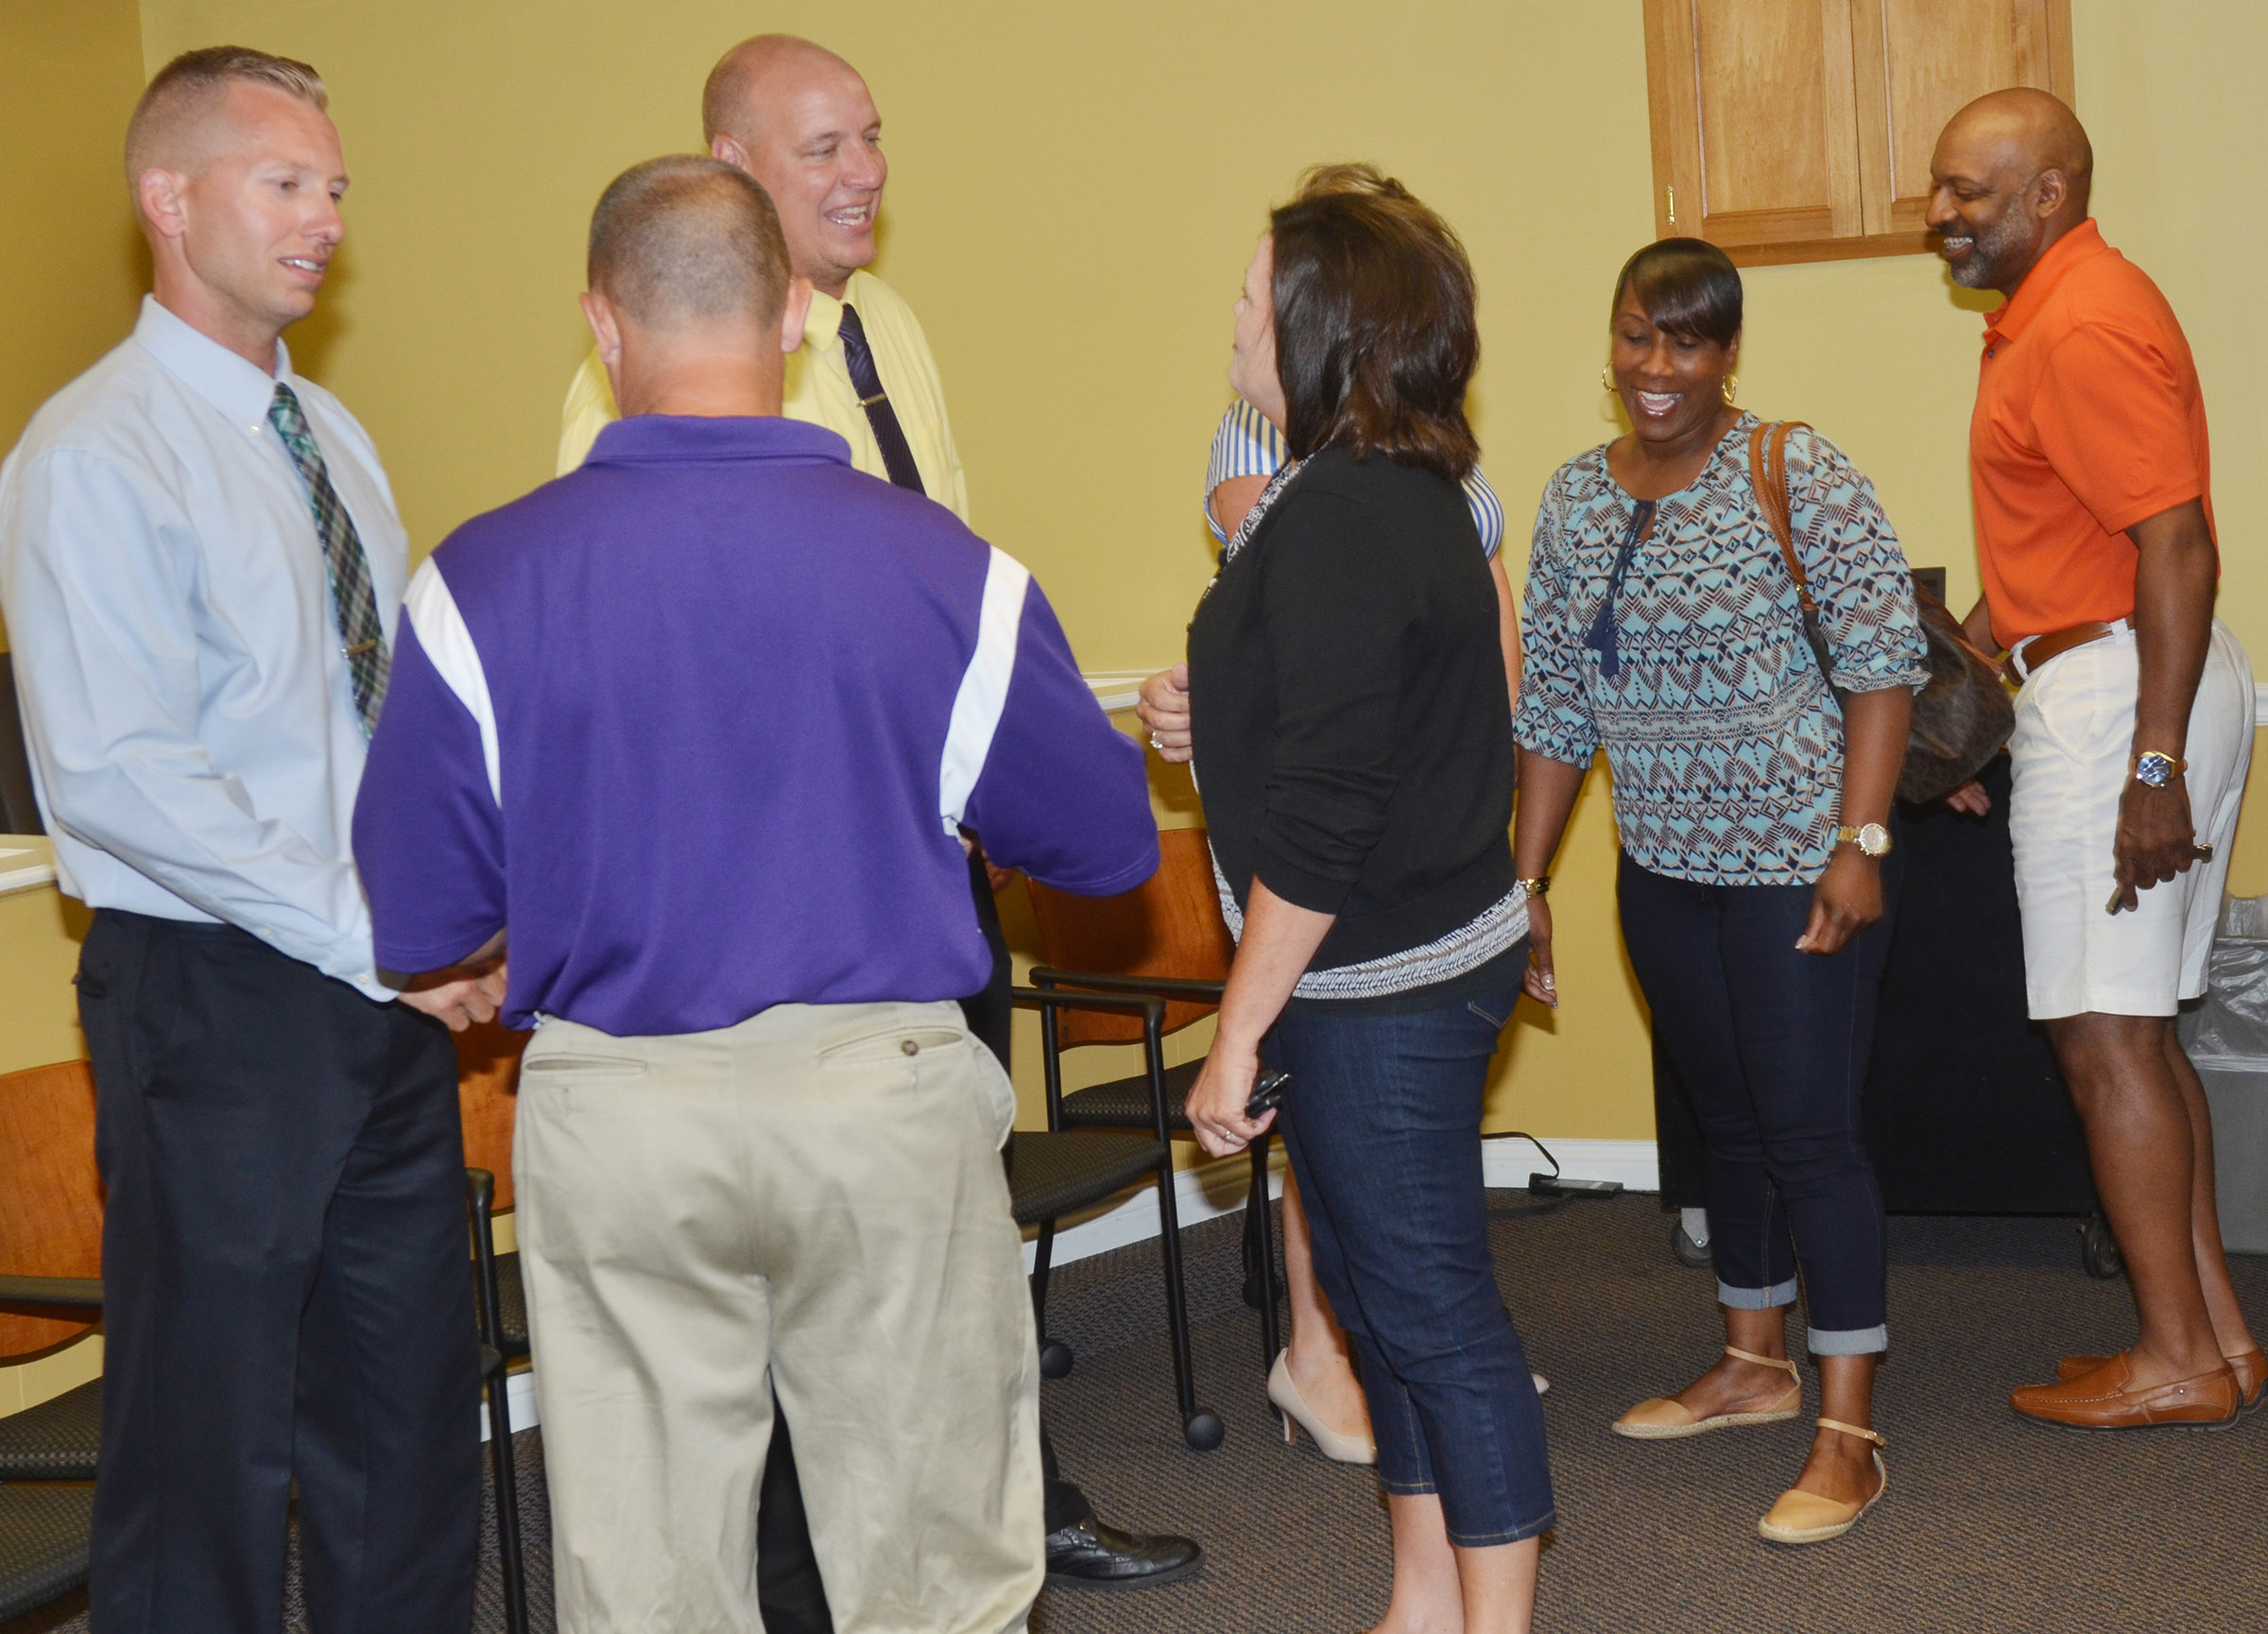 From left, CMS Principal Zach Lewis, CHS Principal David Petett and CES Principal Elisha Rhodes, hidden, greet teachers, staff members and parents.